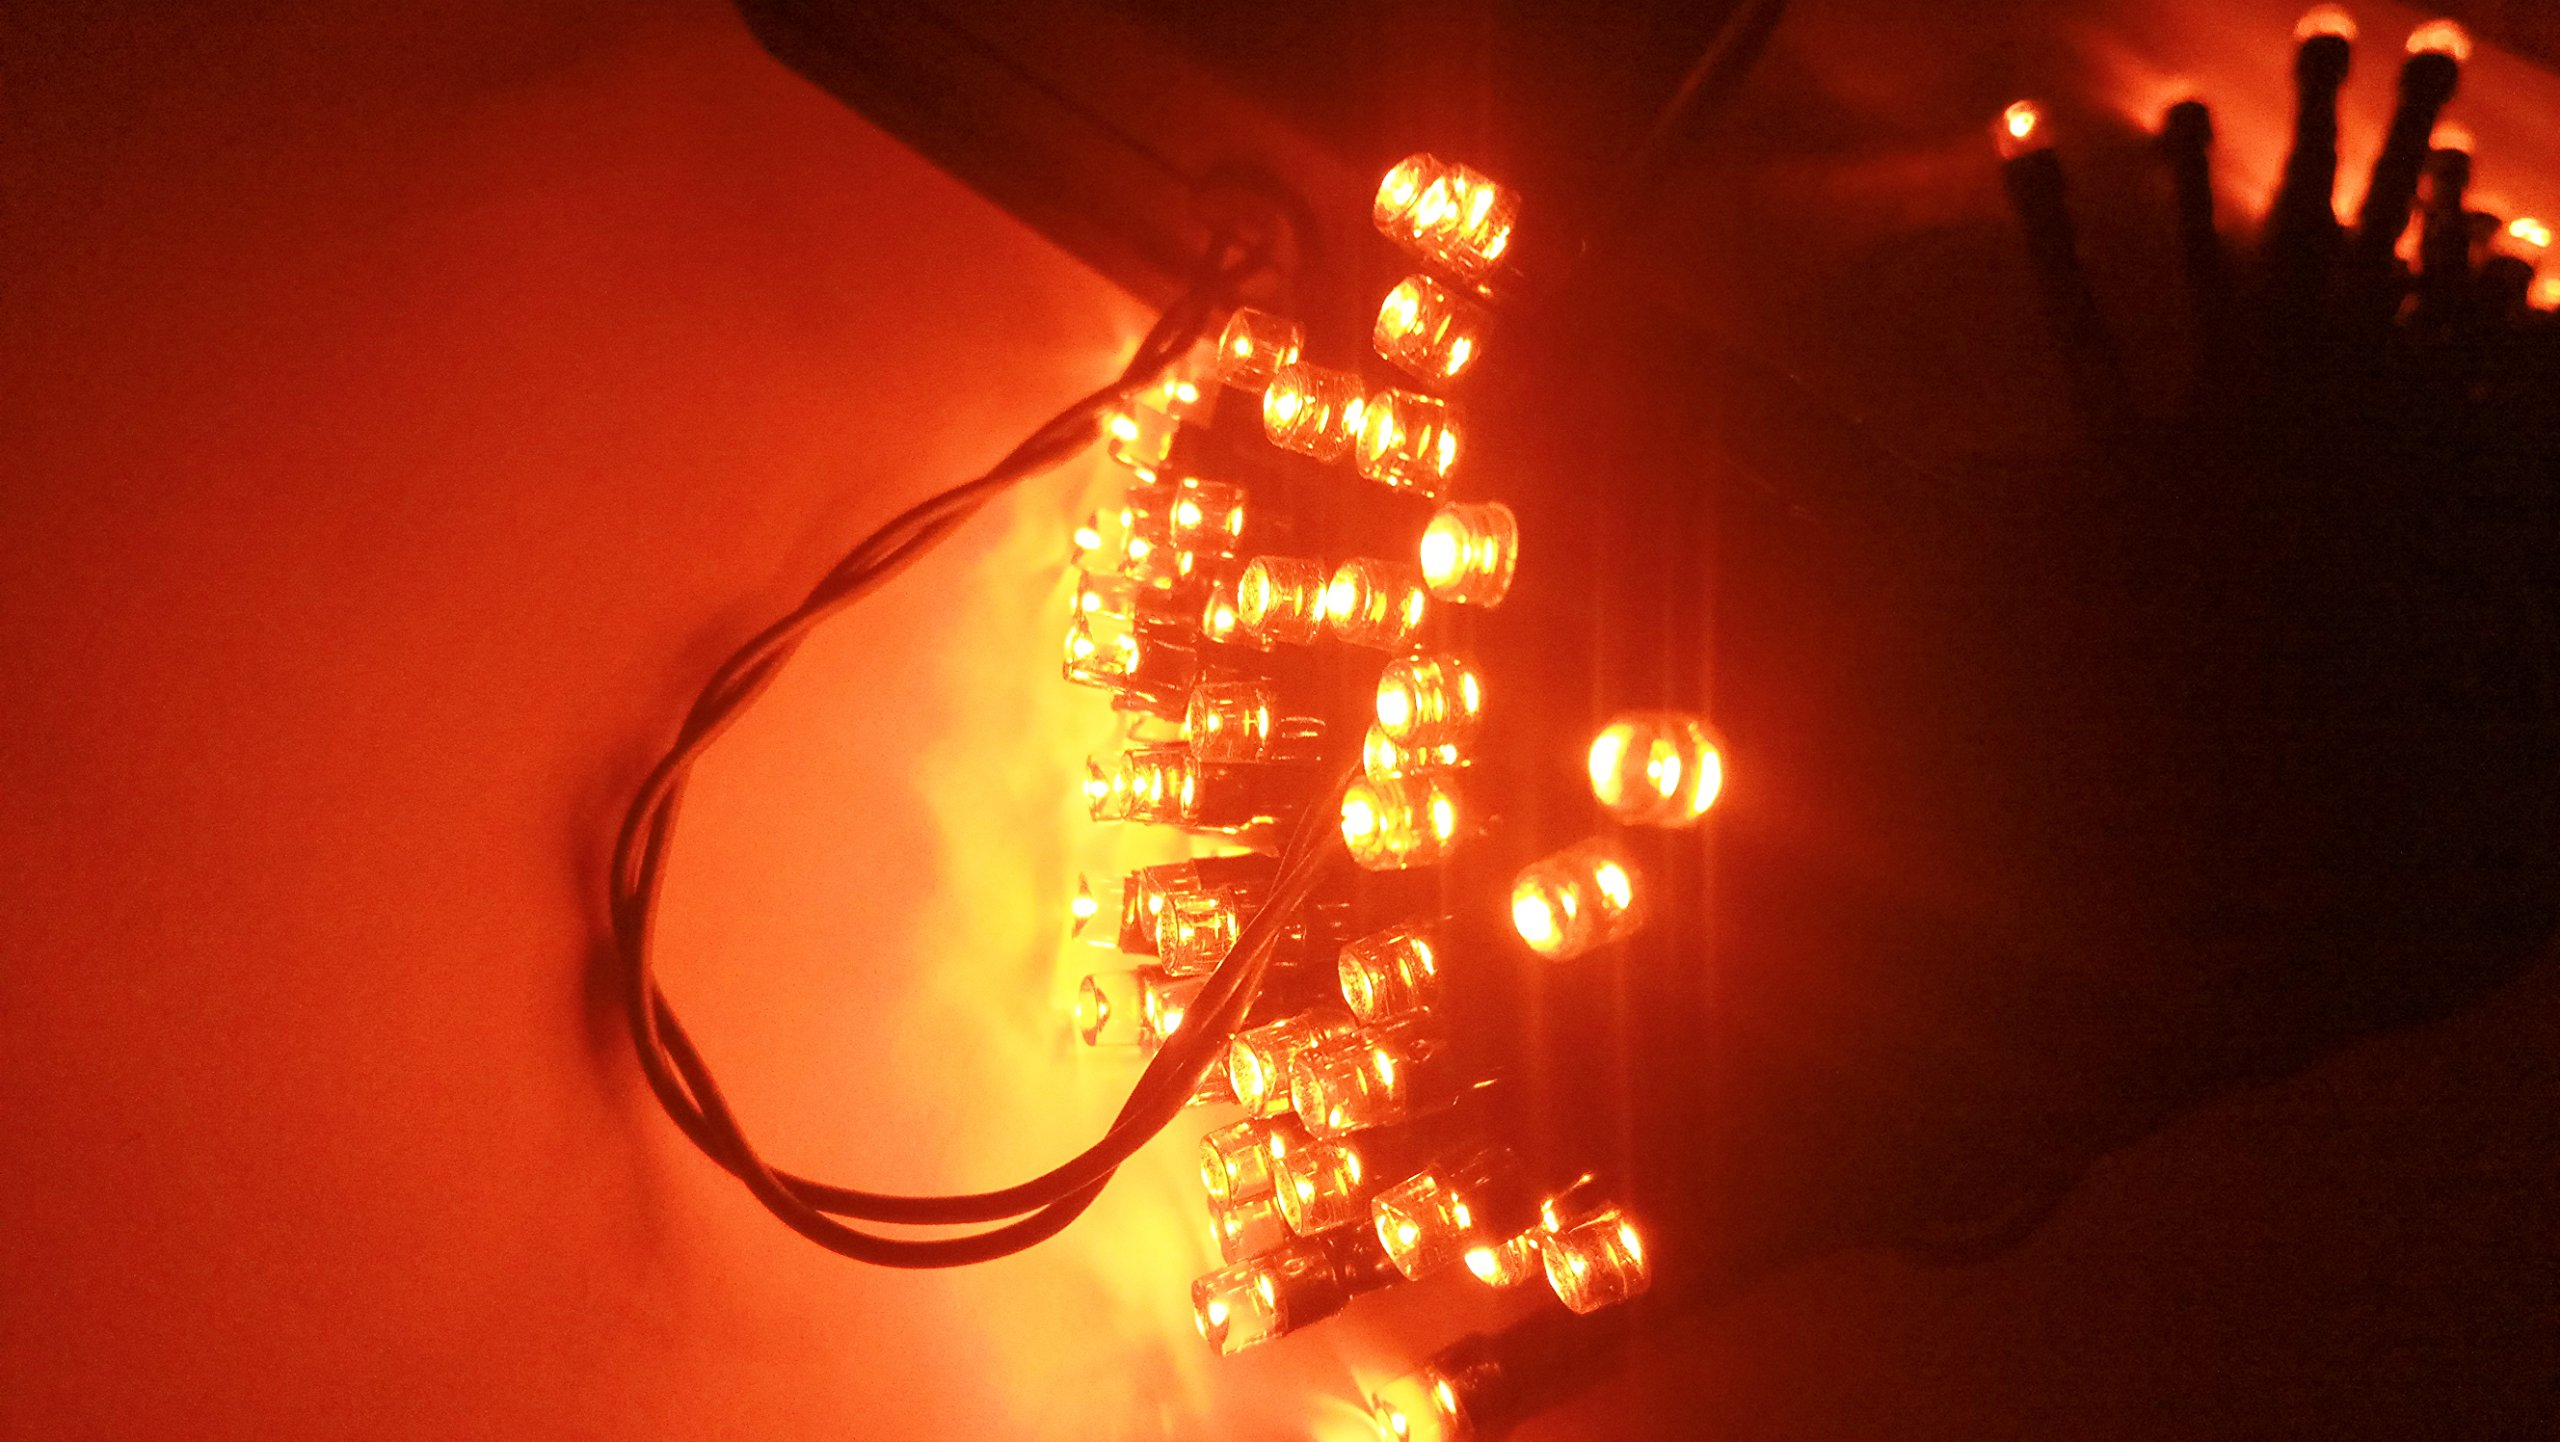 Halloween String Lights, 40ft 100 LED Orange Lights,8Modes, BLINGSTAR Solar Fairy Christmas Lights Ambiance lighting for Party, Garden,Patio, Yard, Home, Parties, Halloween Decoration(Orange) by BLINGSTAR